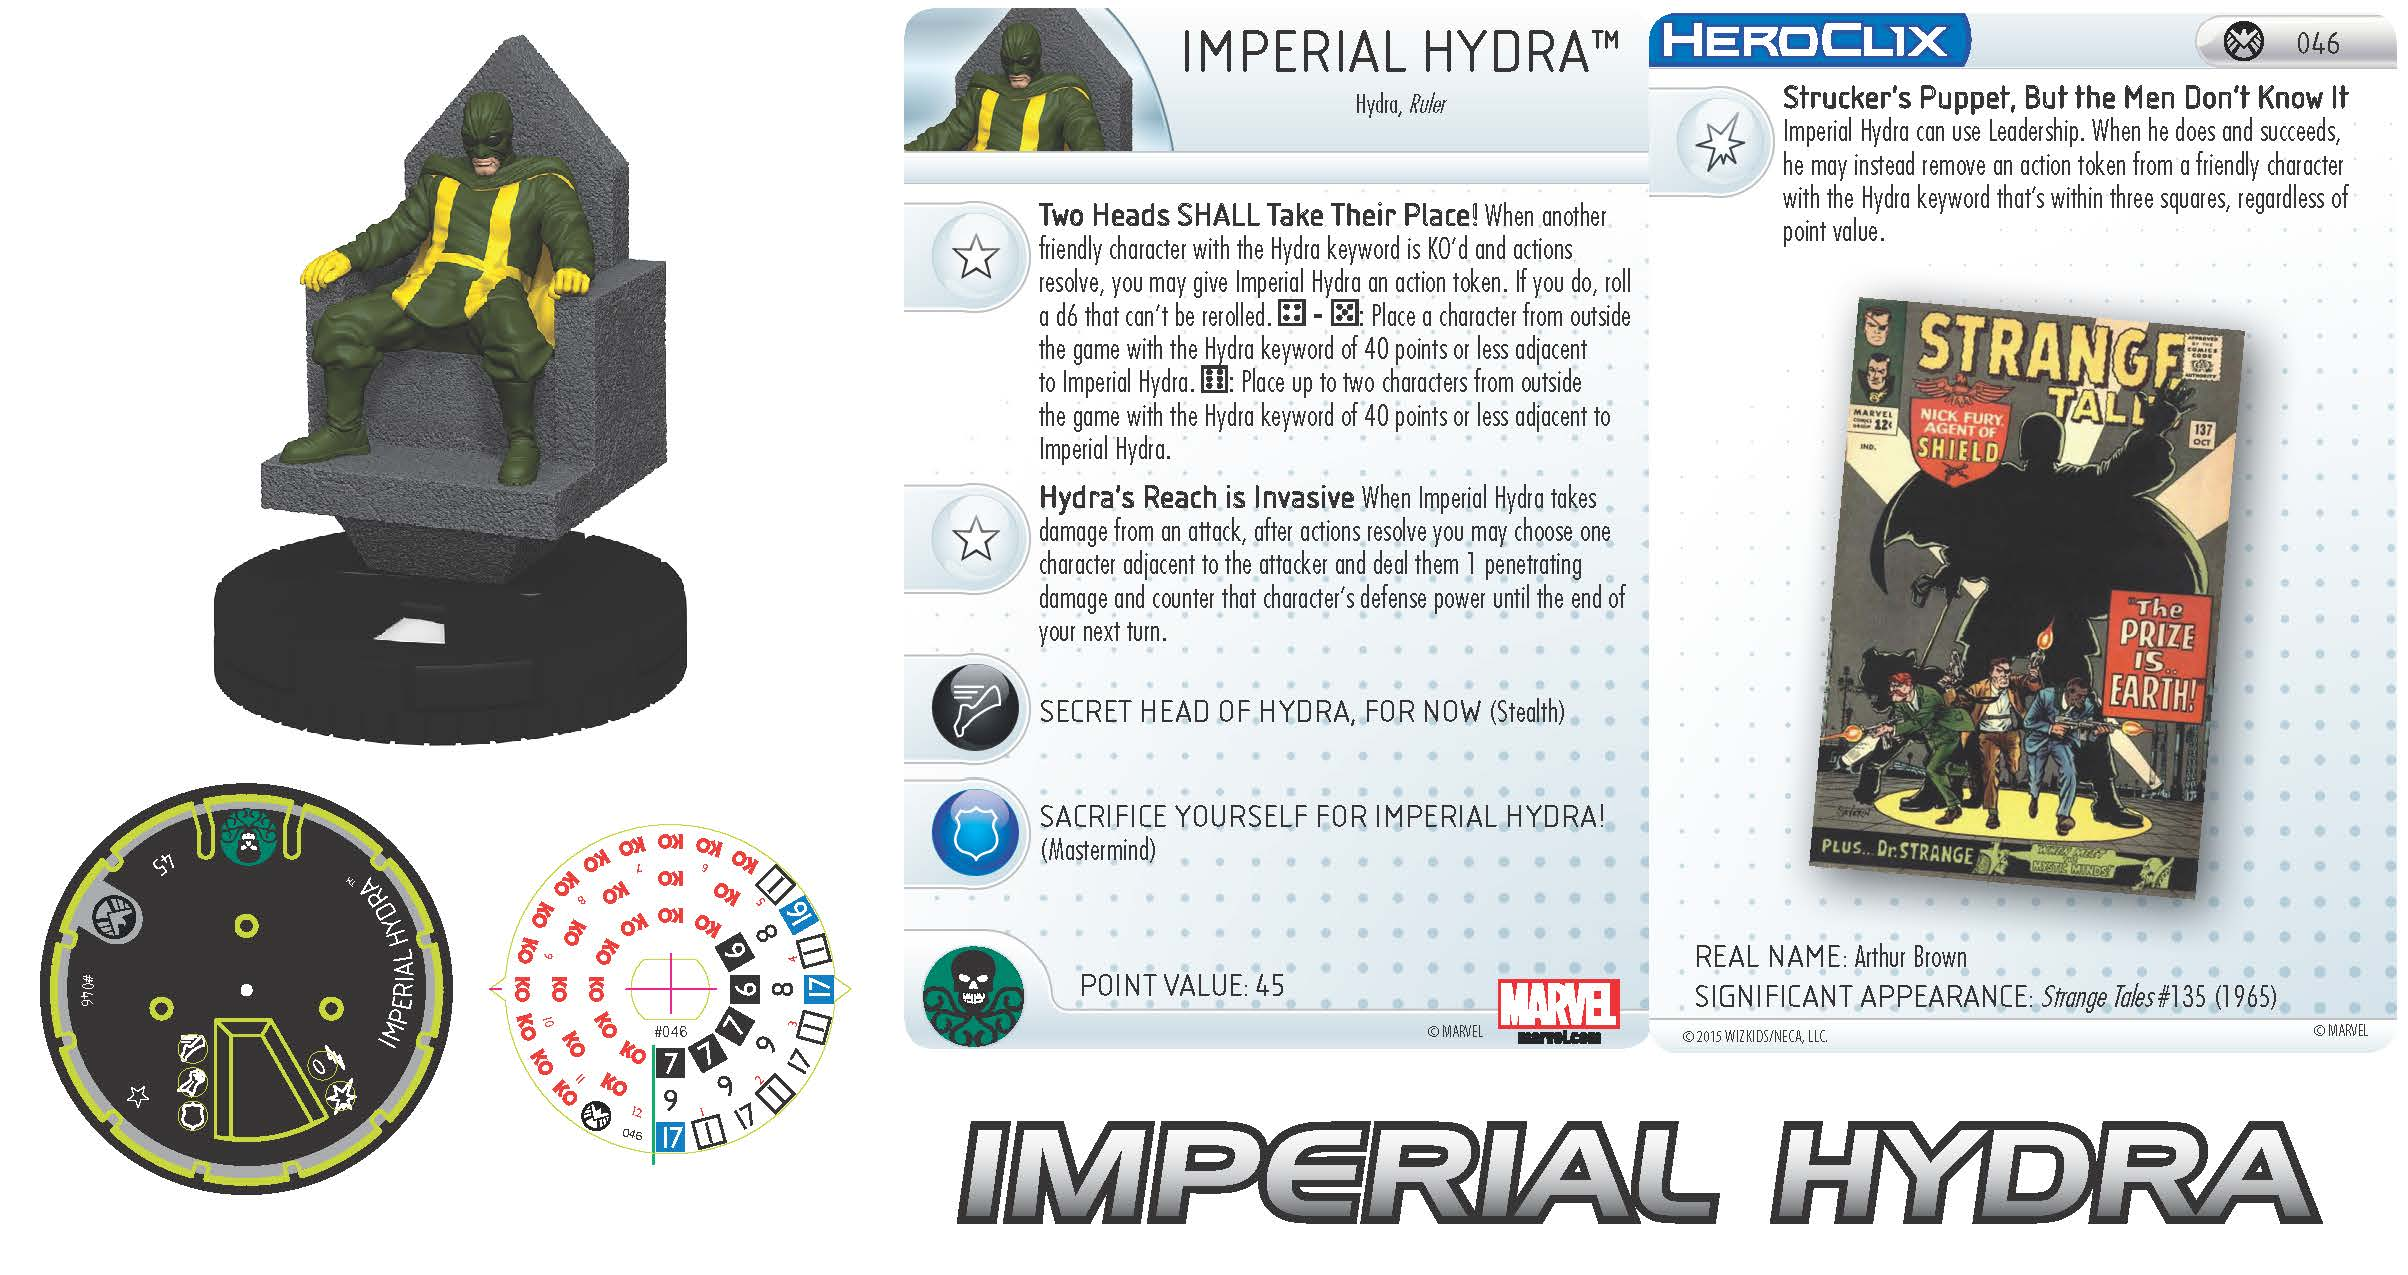 Marvel HeroClix: Nick Fury, Agent of S.H.I.E.L.D.- Imperial Hydra